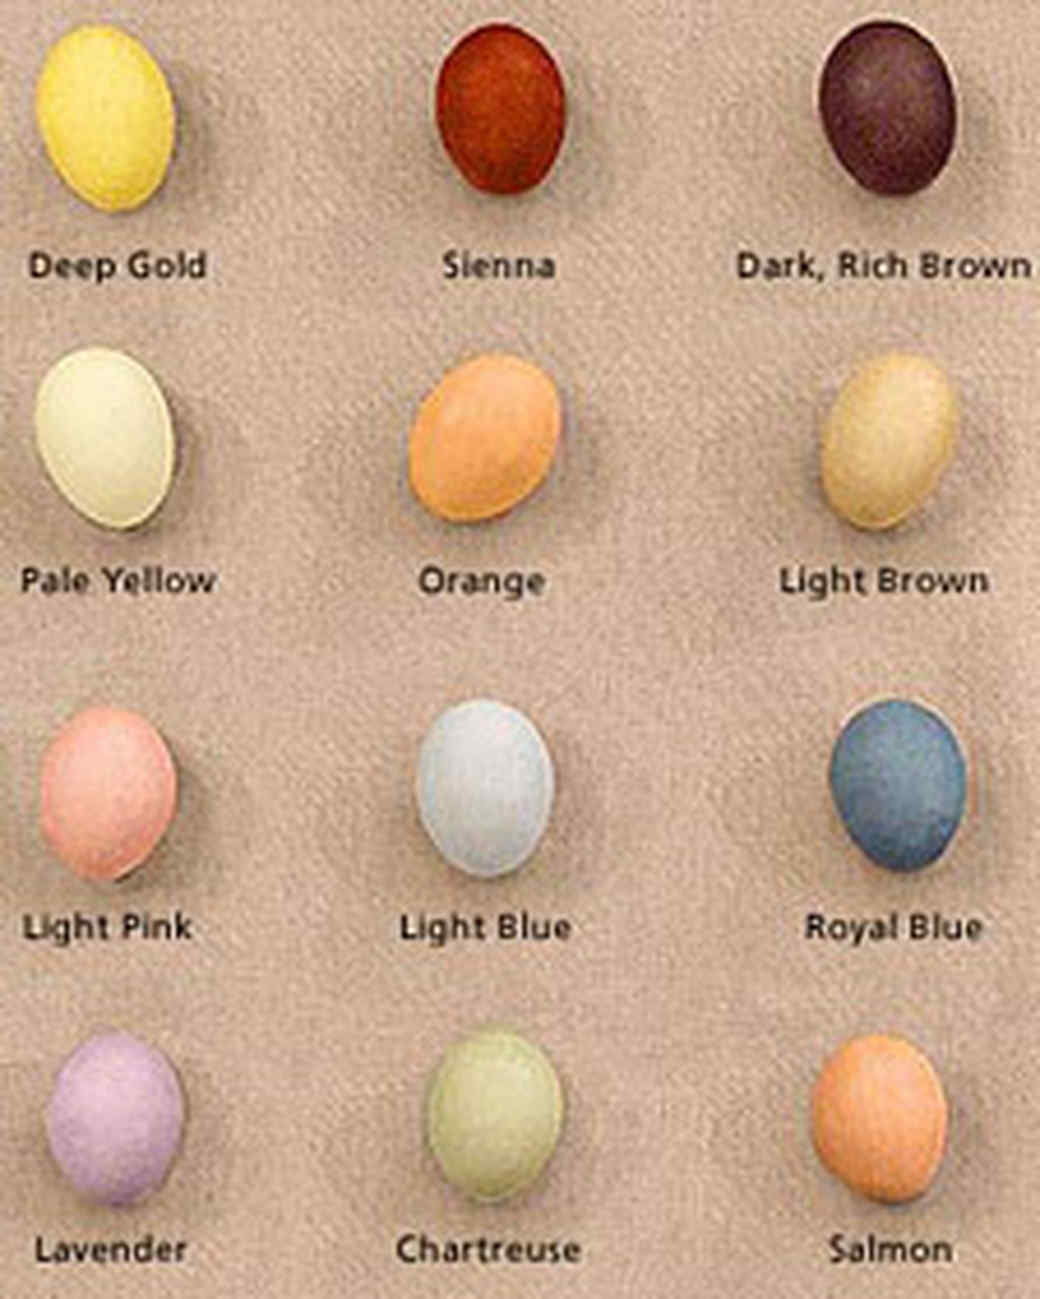 The Tradition Of Dyeing Eggs Goes Back To Medieval Times When People Made